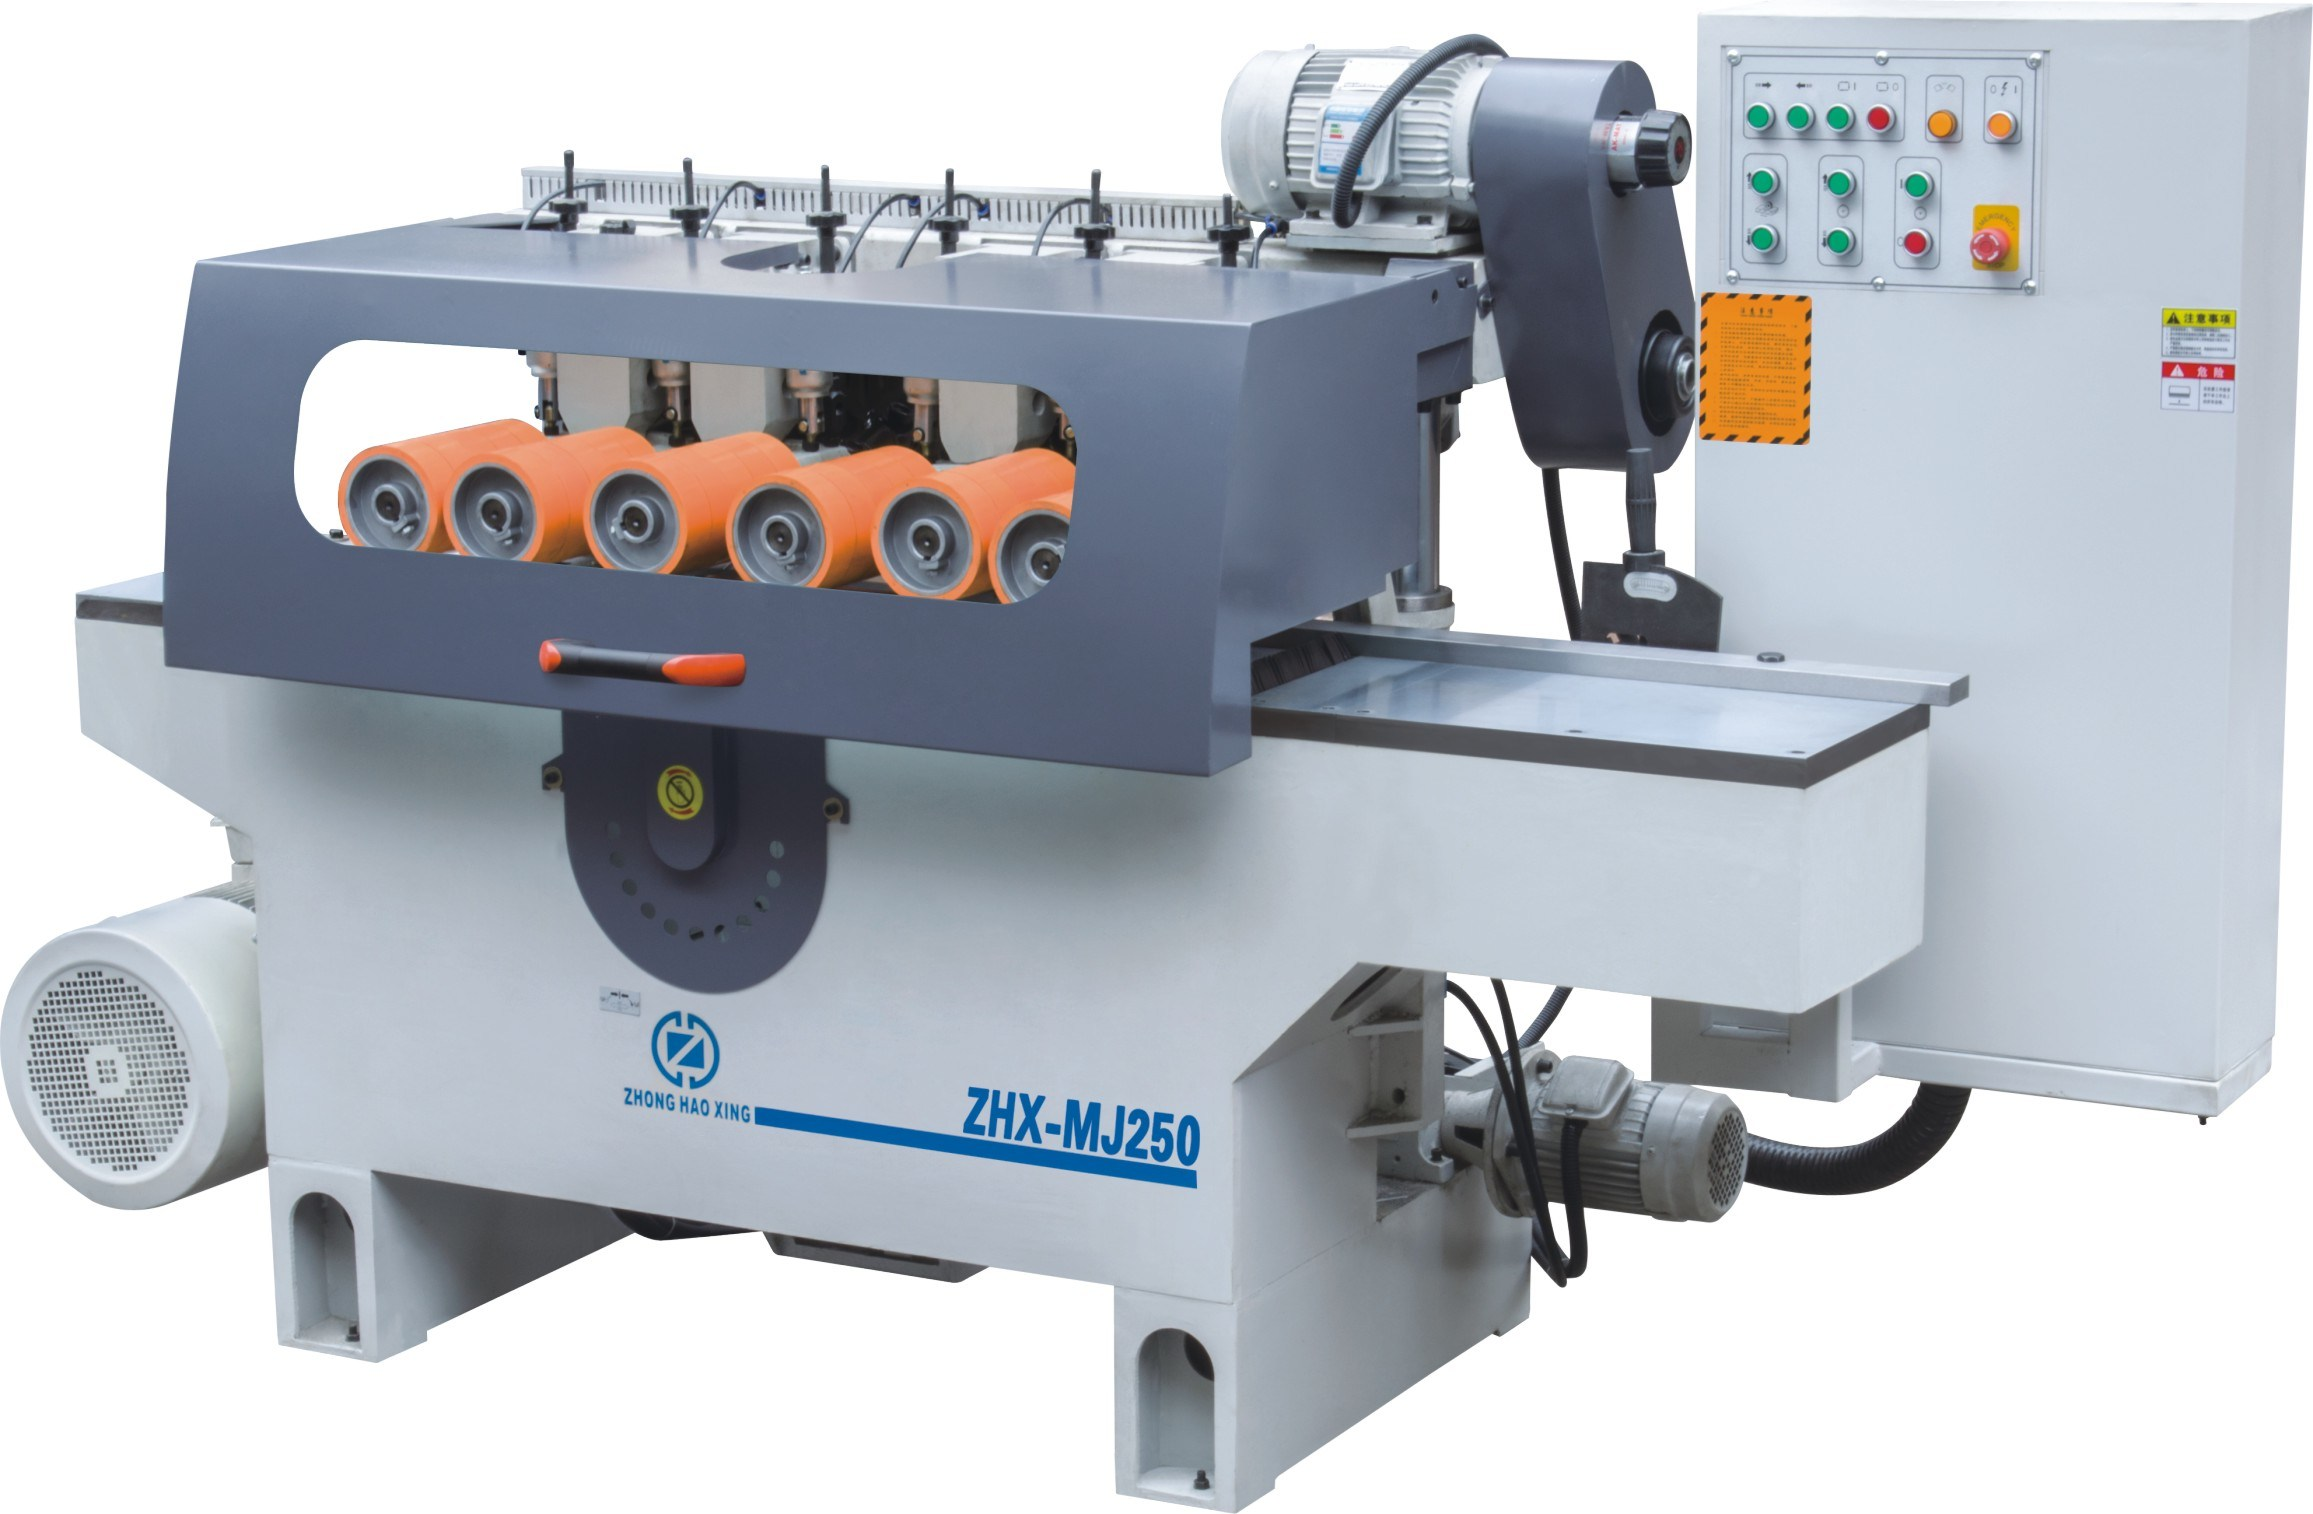 ZHX-MJ320 Wood machine.